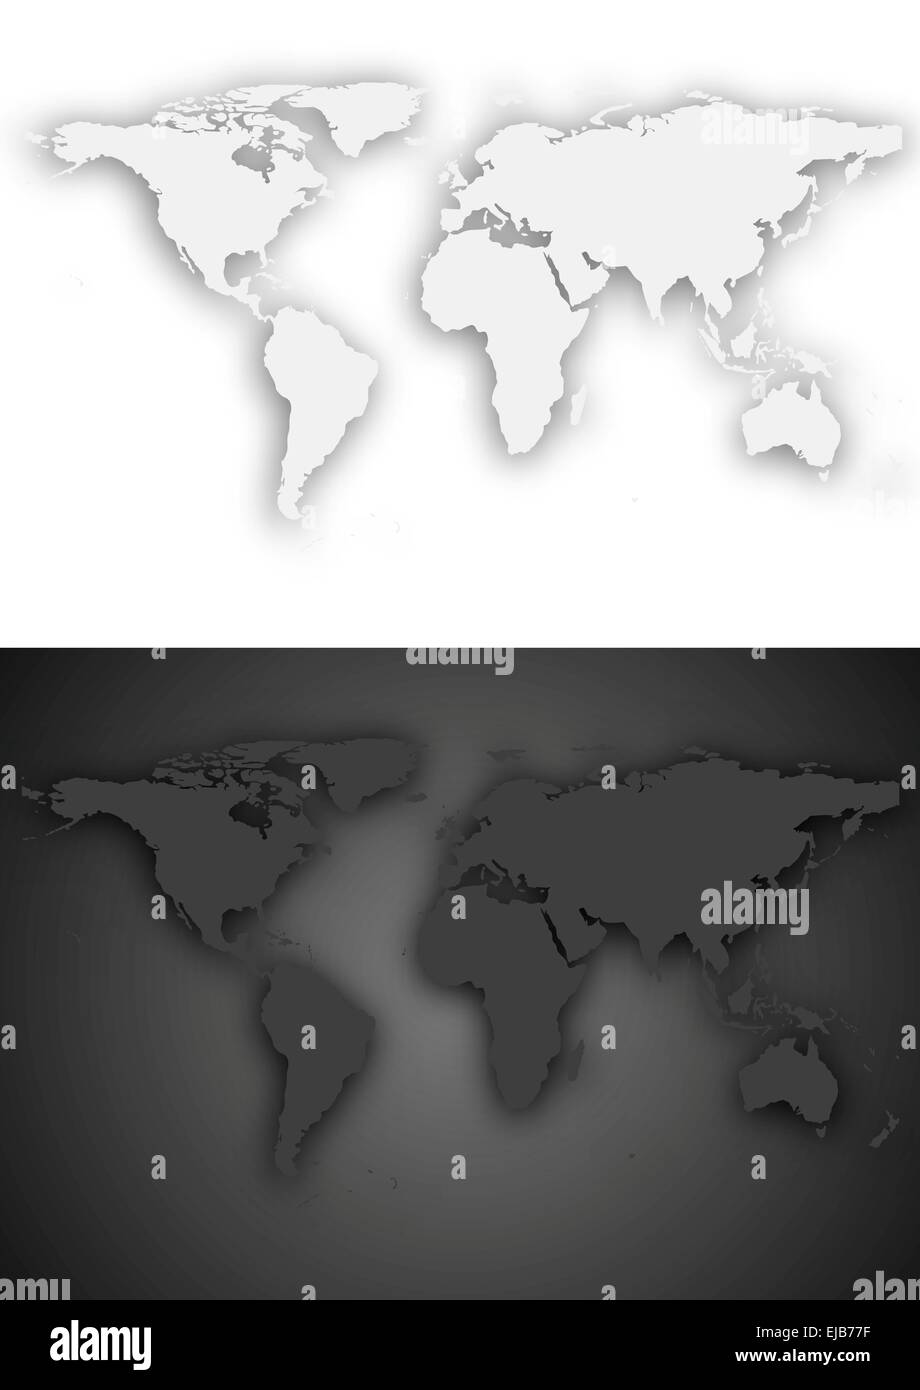 Dark And Light Map : light, Light, World, Design, Stock, Photo, Alamy